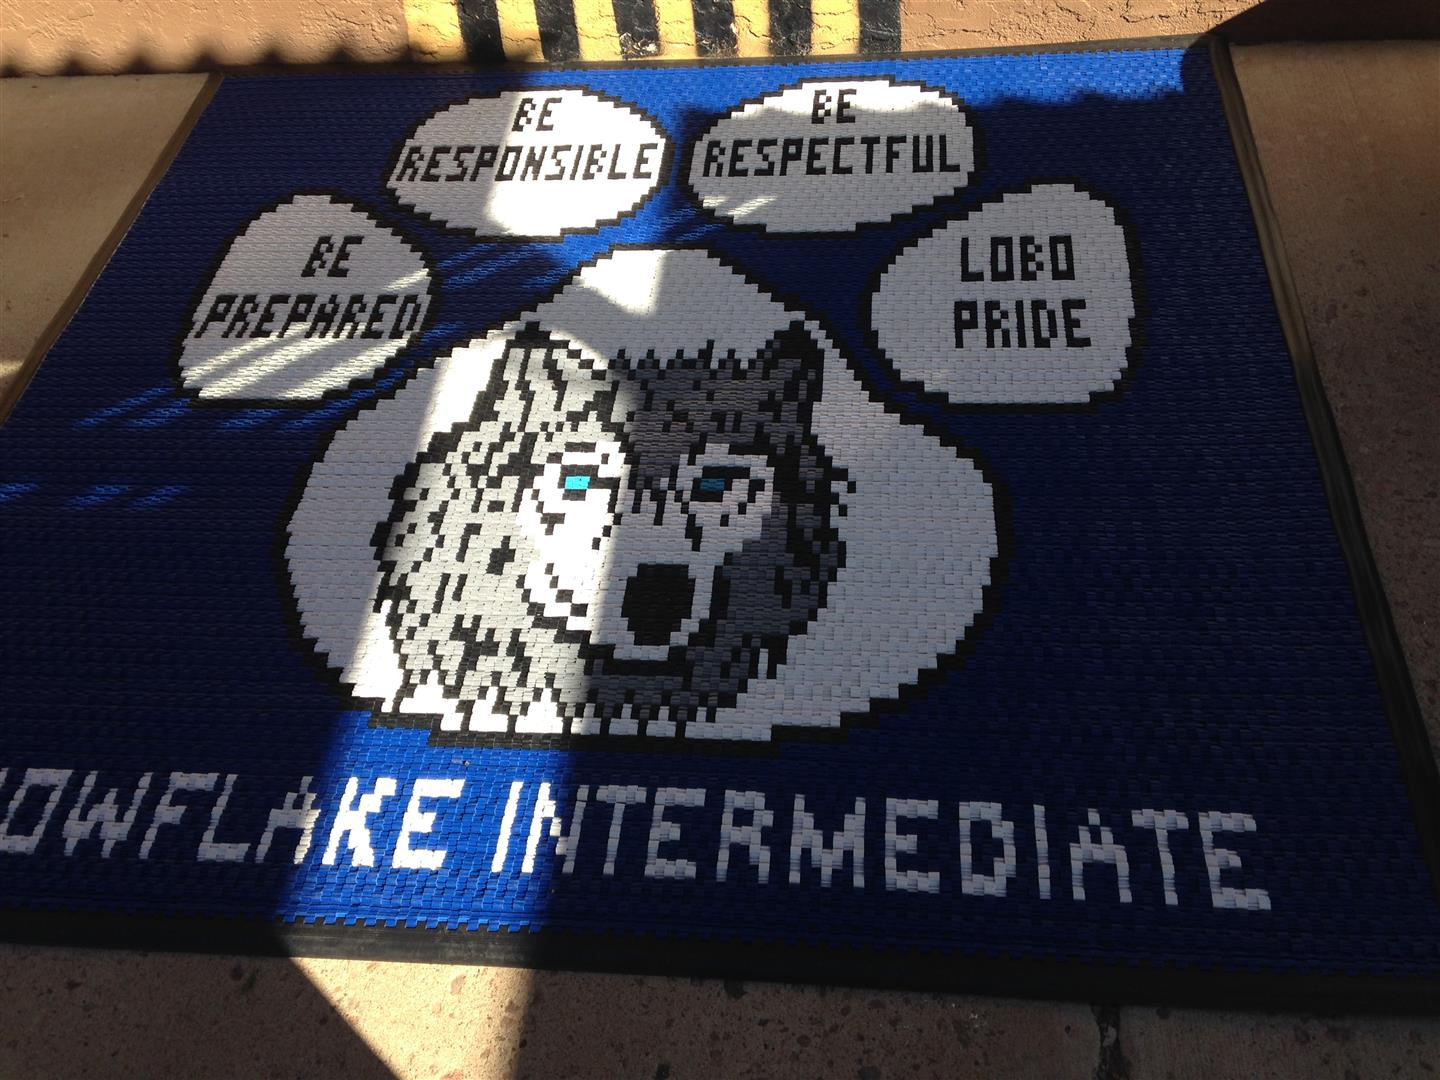 PTSO purchases new mat for school